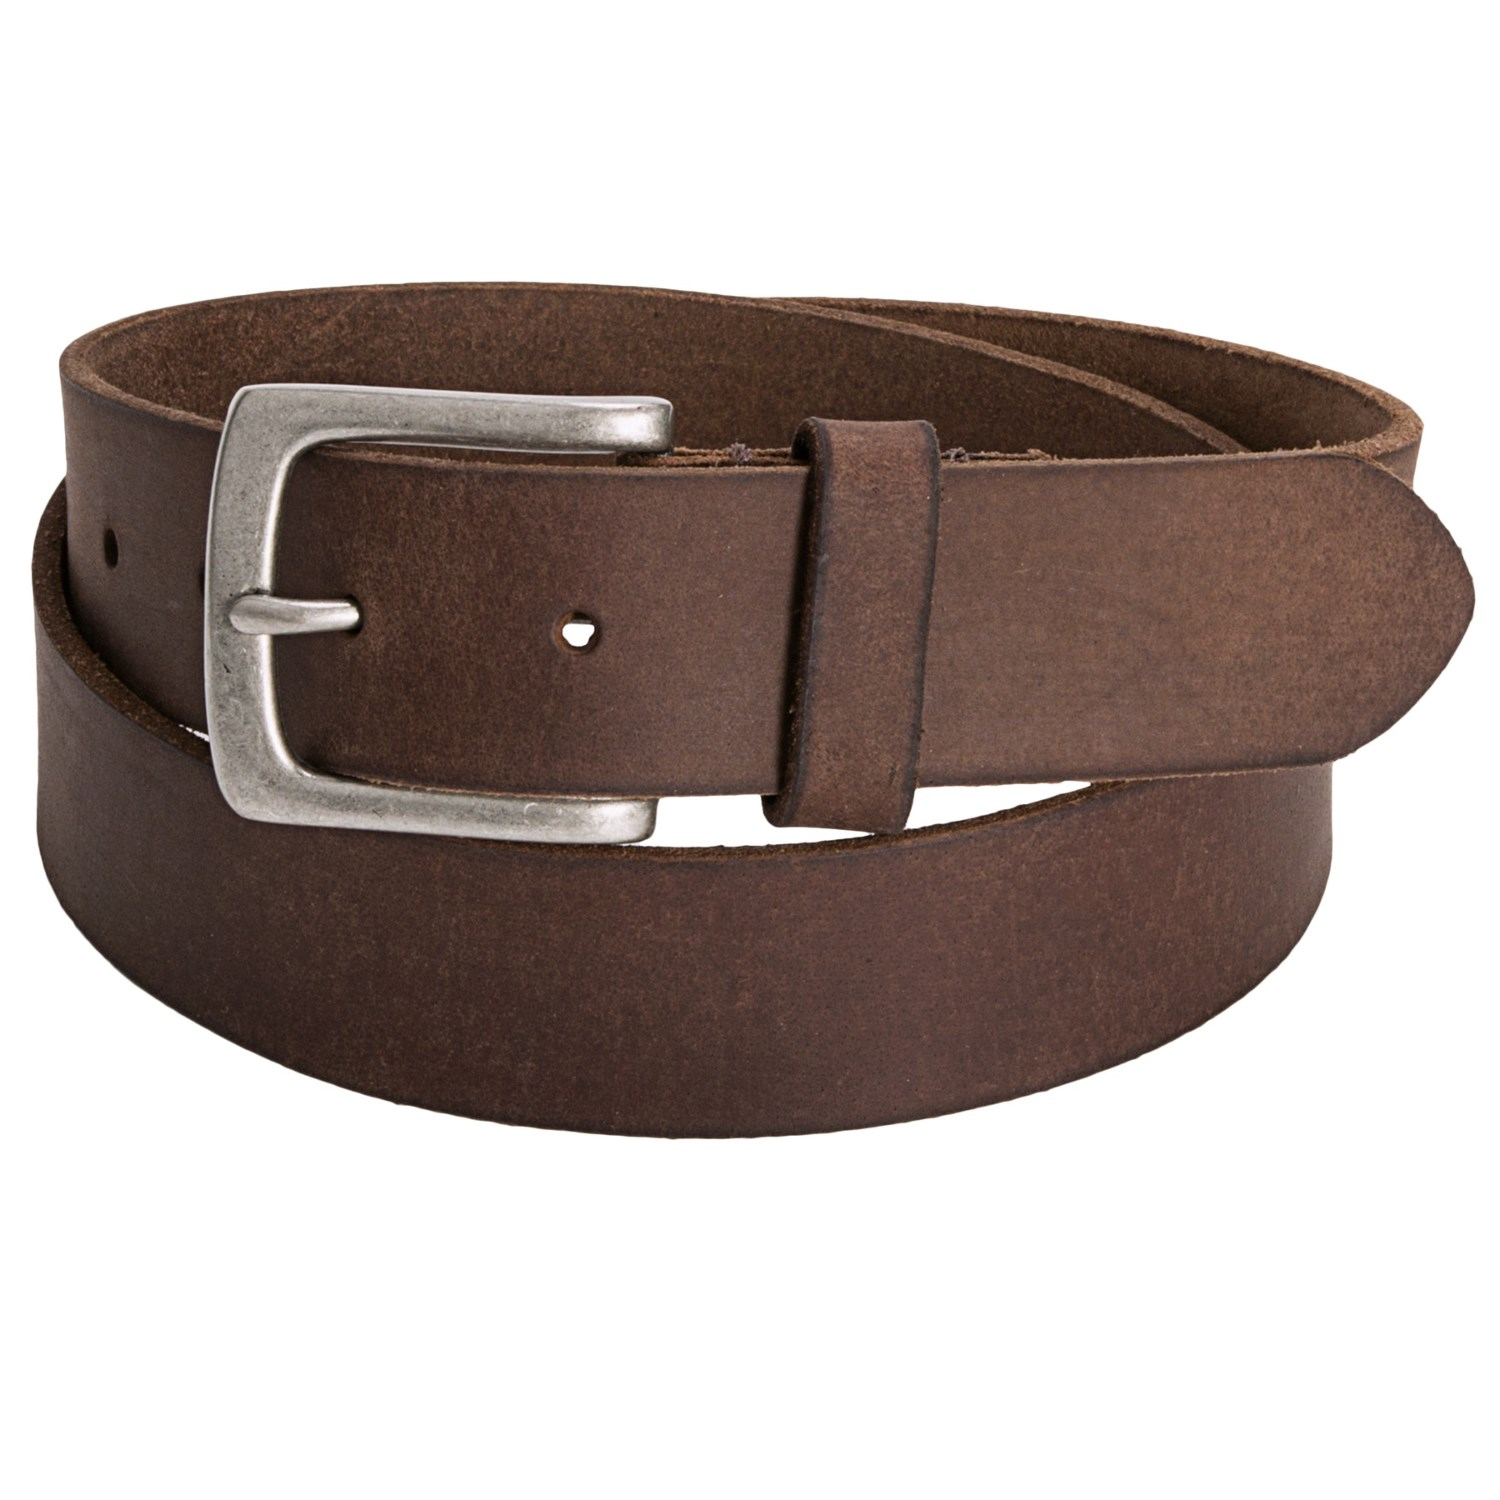 Men's Belts: Free Shipping on orders over $45 at ganjamoney.tk - Your Online Belts Store! Overstock uses cookies to ensure you get the best experience on our site. If you continue on our site, you consent to the use of such cookies. CTM® Men's Big & Tall Leather Dress Belt with Silver Buckle (Pack of 2) SALE. Quick View. Sale $ 7.